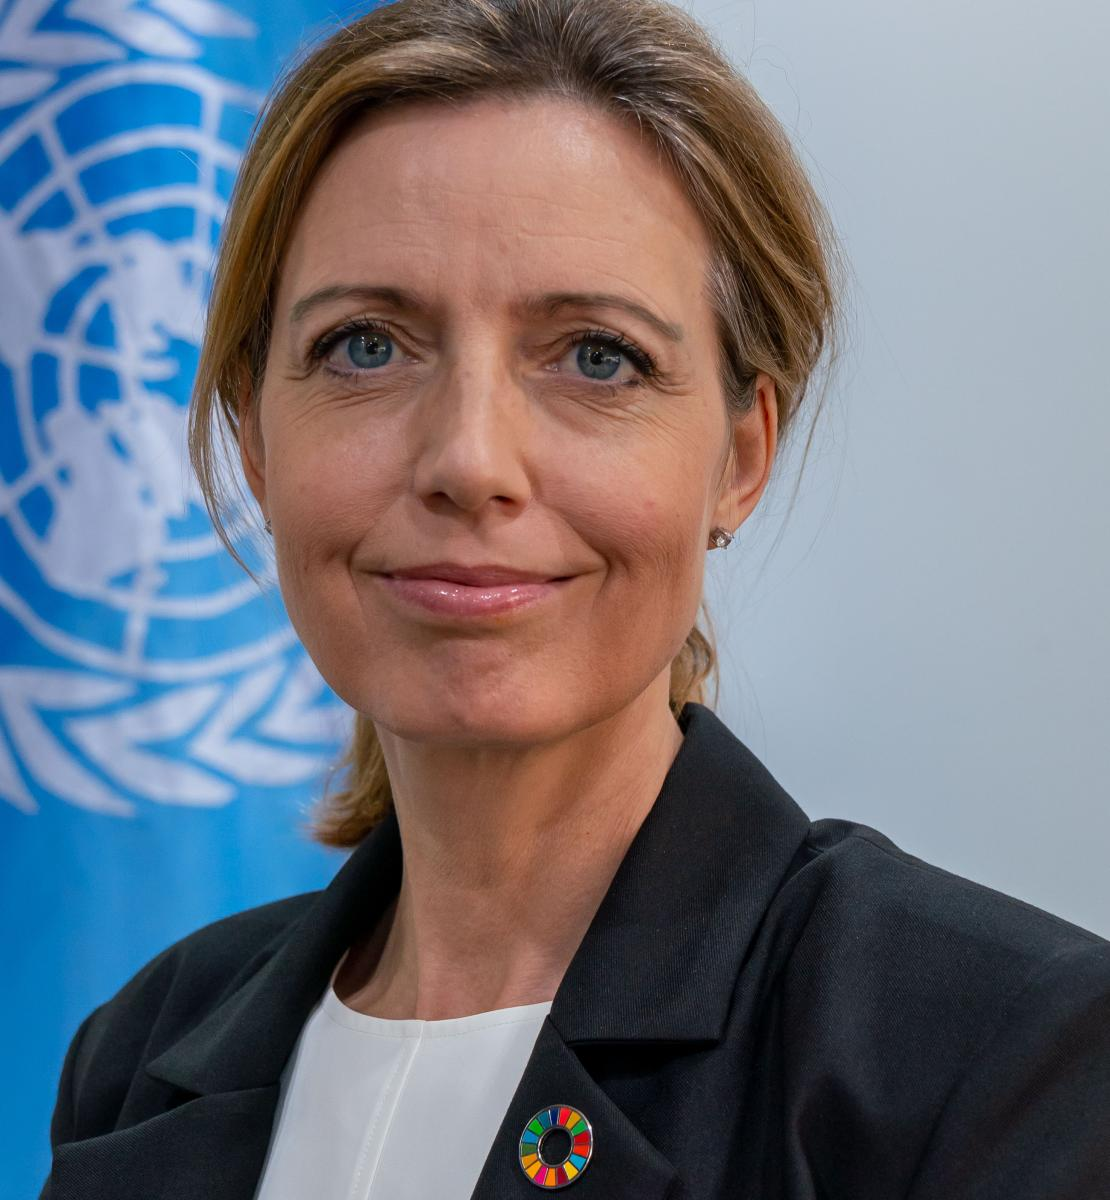 Official photo of the new appointed Resident Coordinator for Kazakhstan,Michaela Friberg.